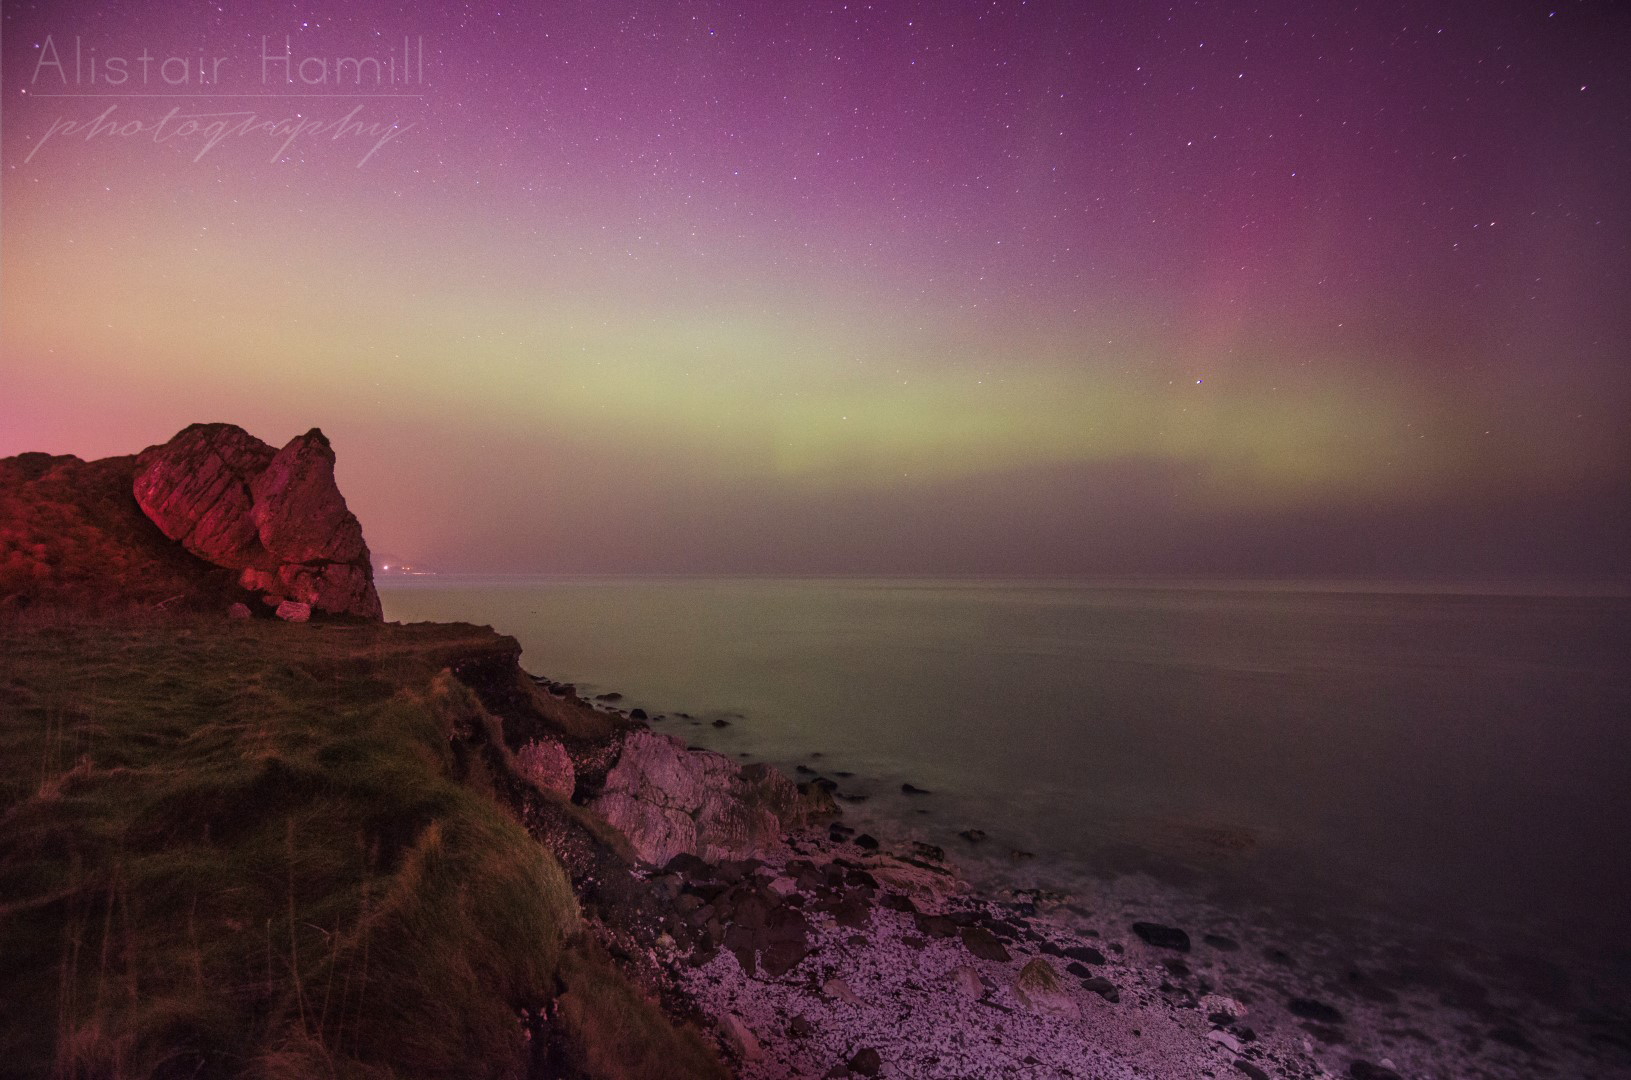 The amount of light being cast by the aurora was more than I had previously witnessed, lighting the sea and the beach before me.